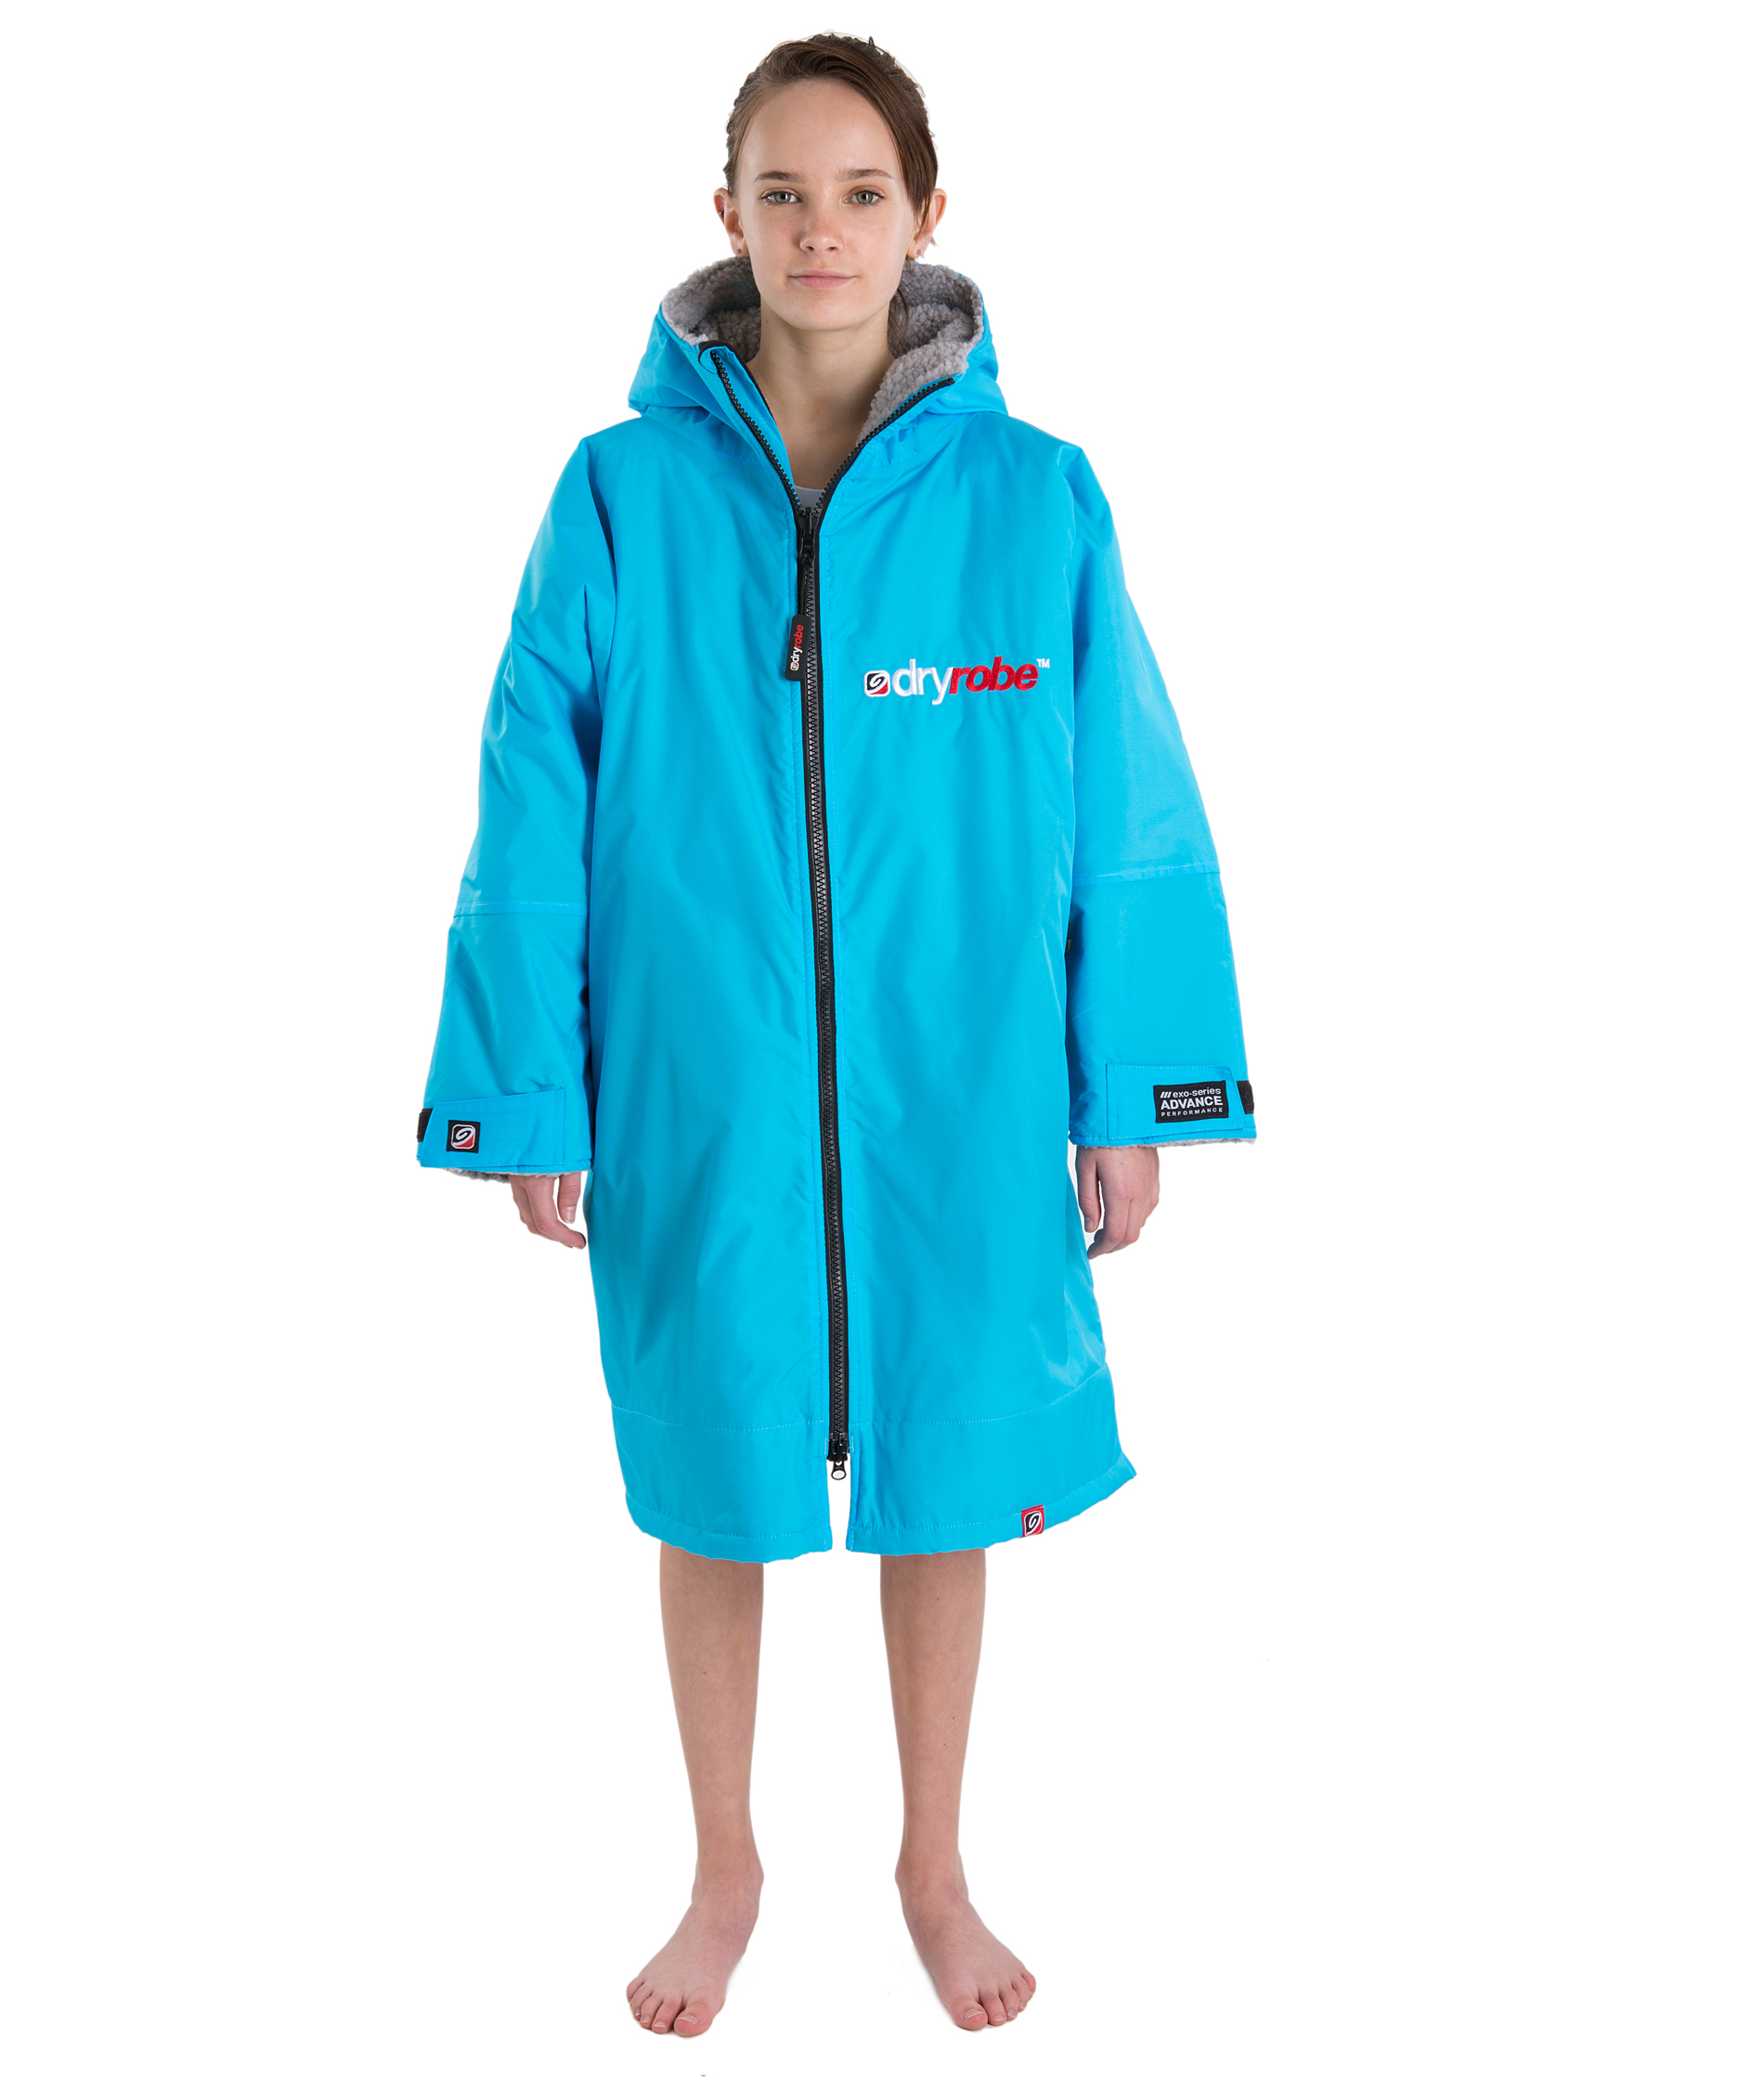 Dryrobe Advance Long Sleeve Sky Blue/Grey - Small